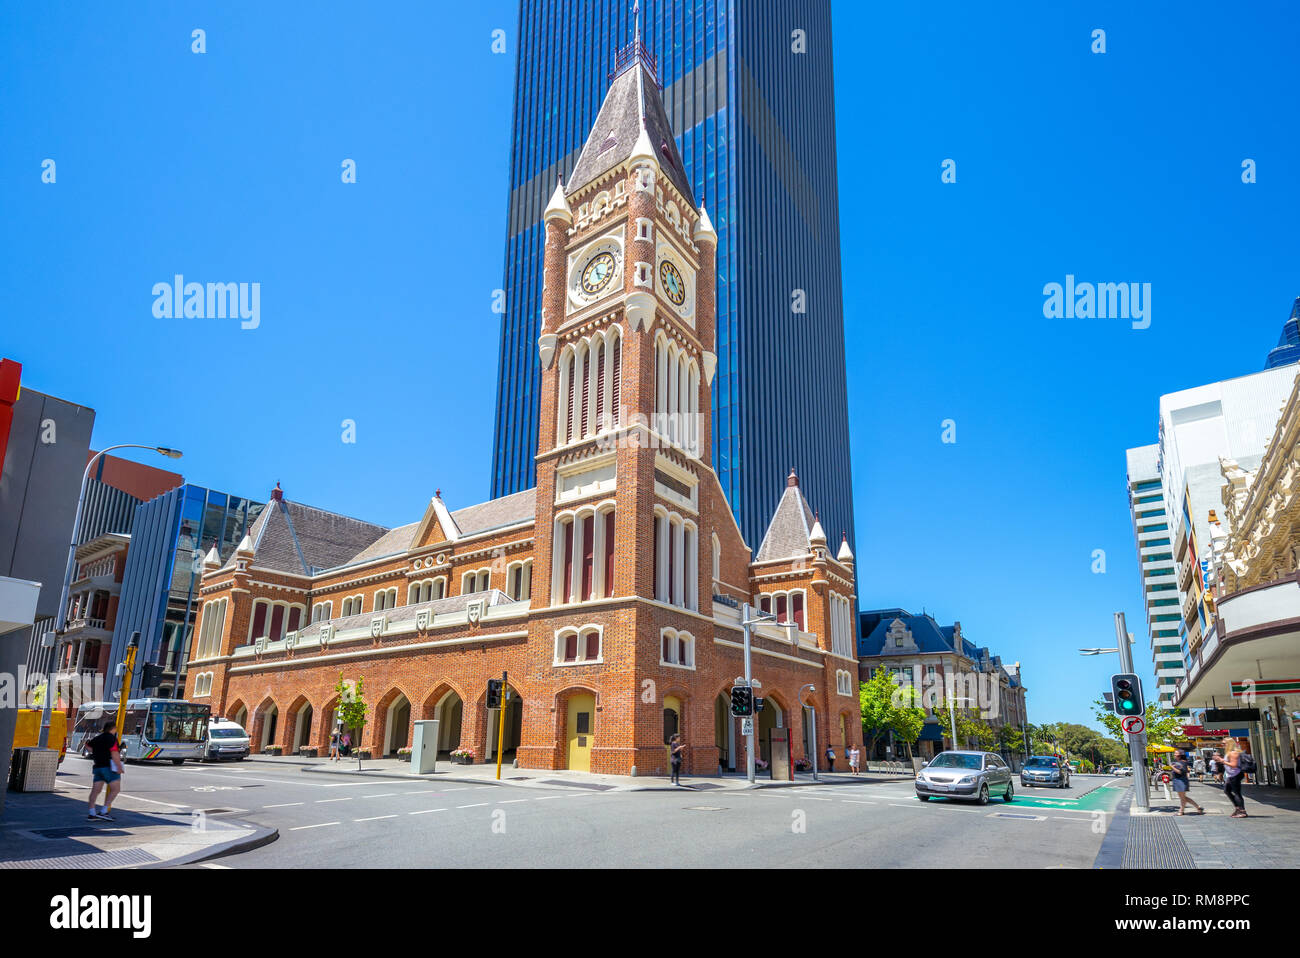 Perth Town Hall in Australia built by convicts - Stock Image